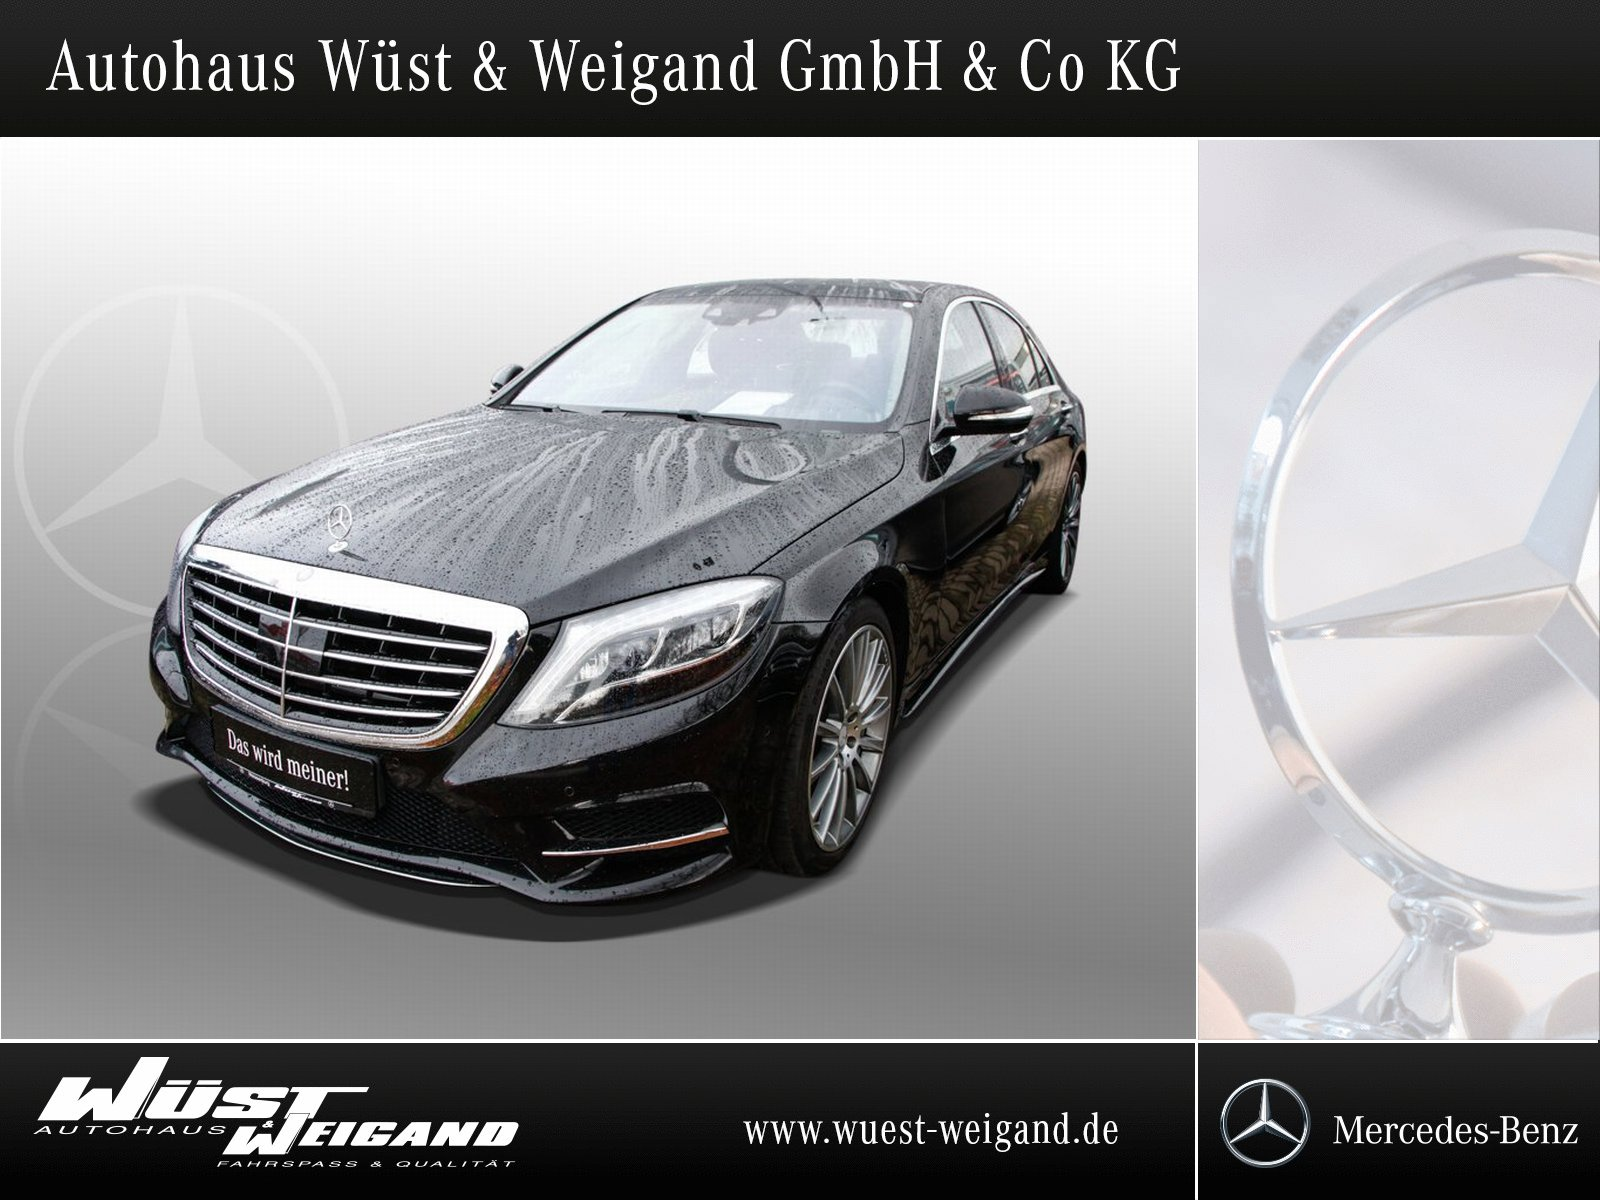 Mercedes-Benz S 500 4Matic AMG-Line+Distronic+Pano+HUD+Memory, Jahr 2015, petrol